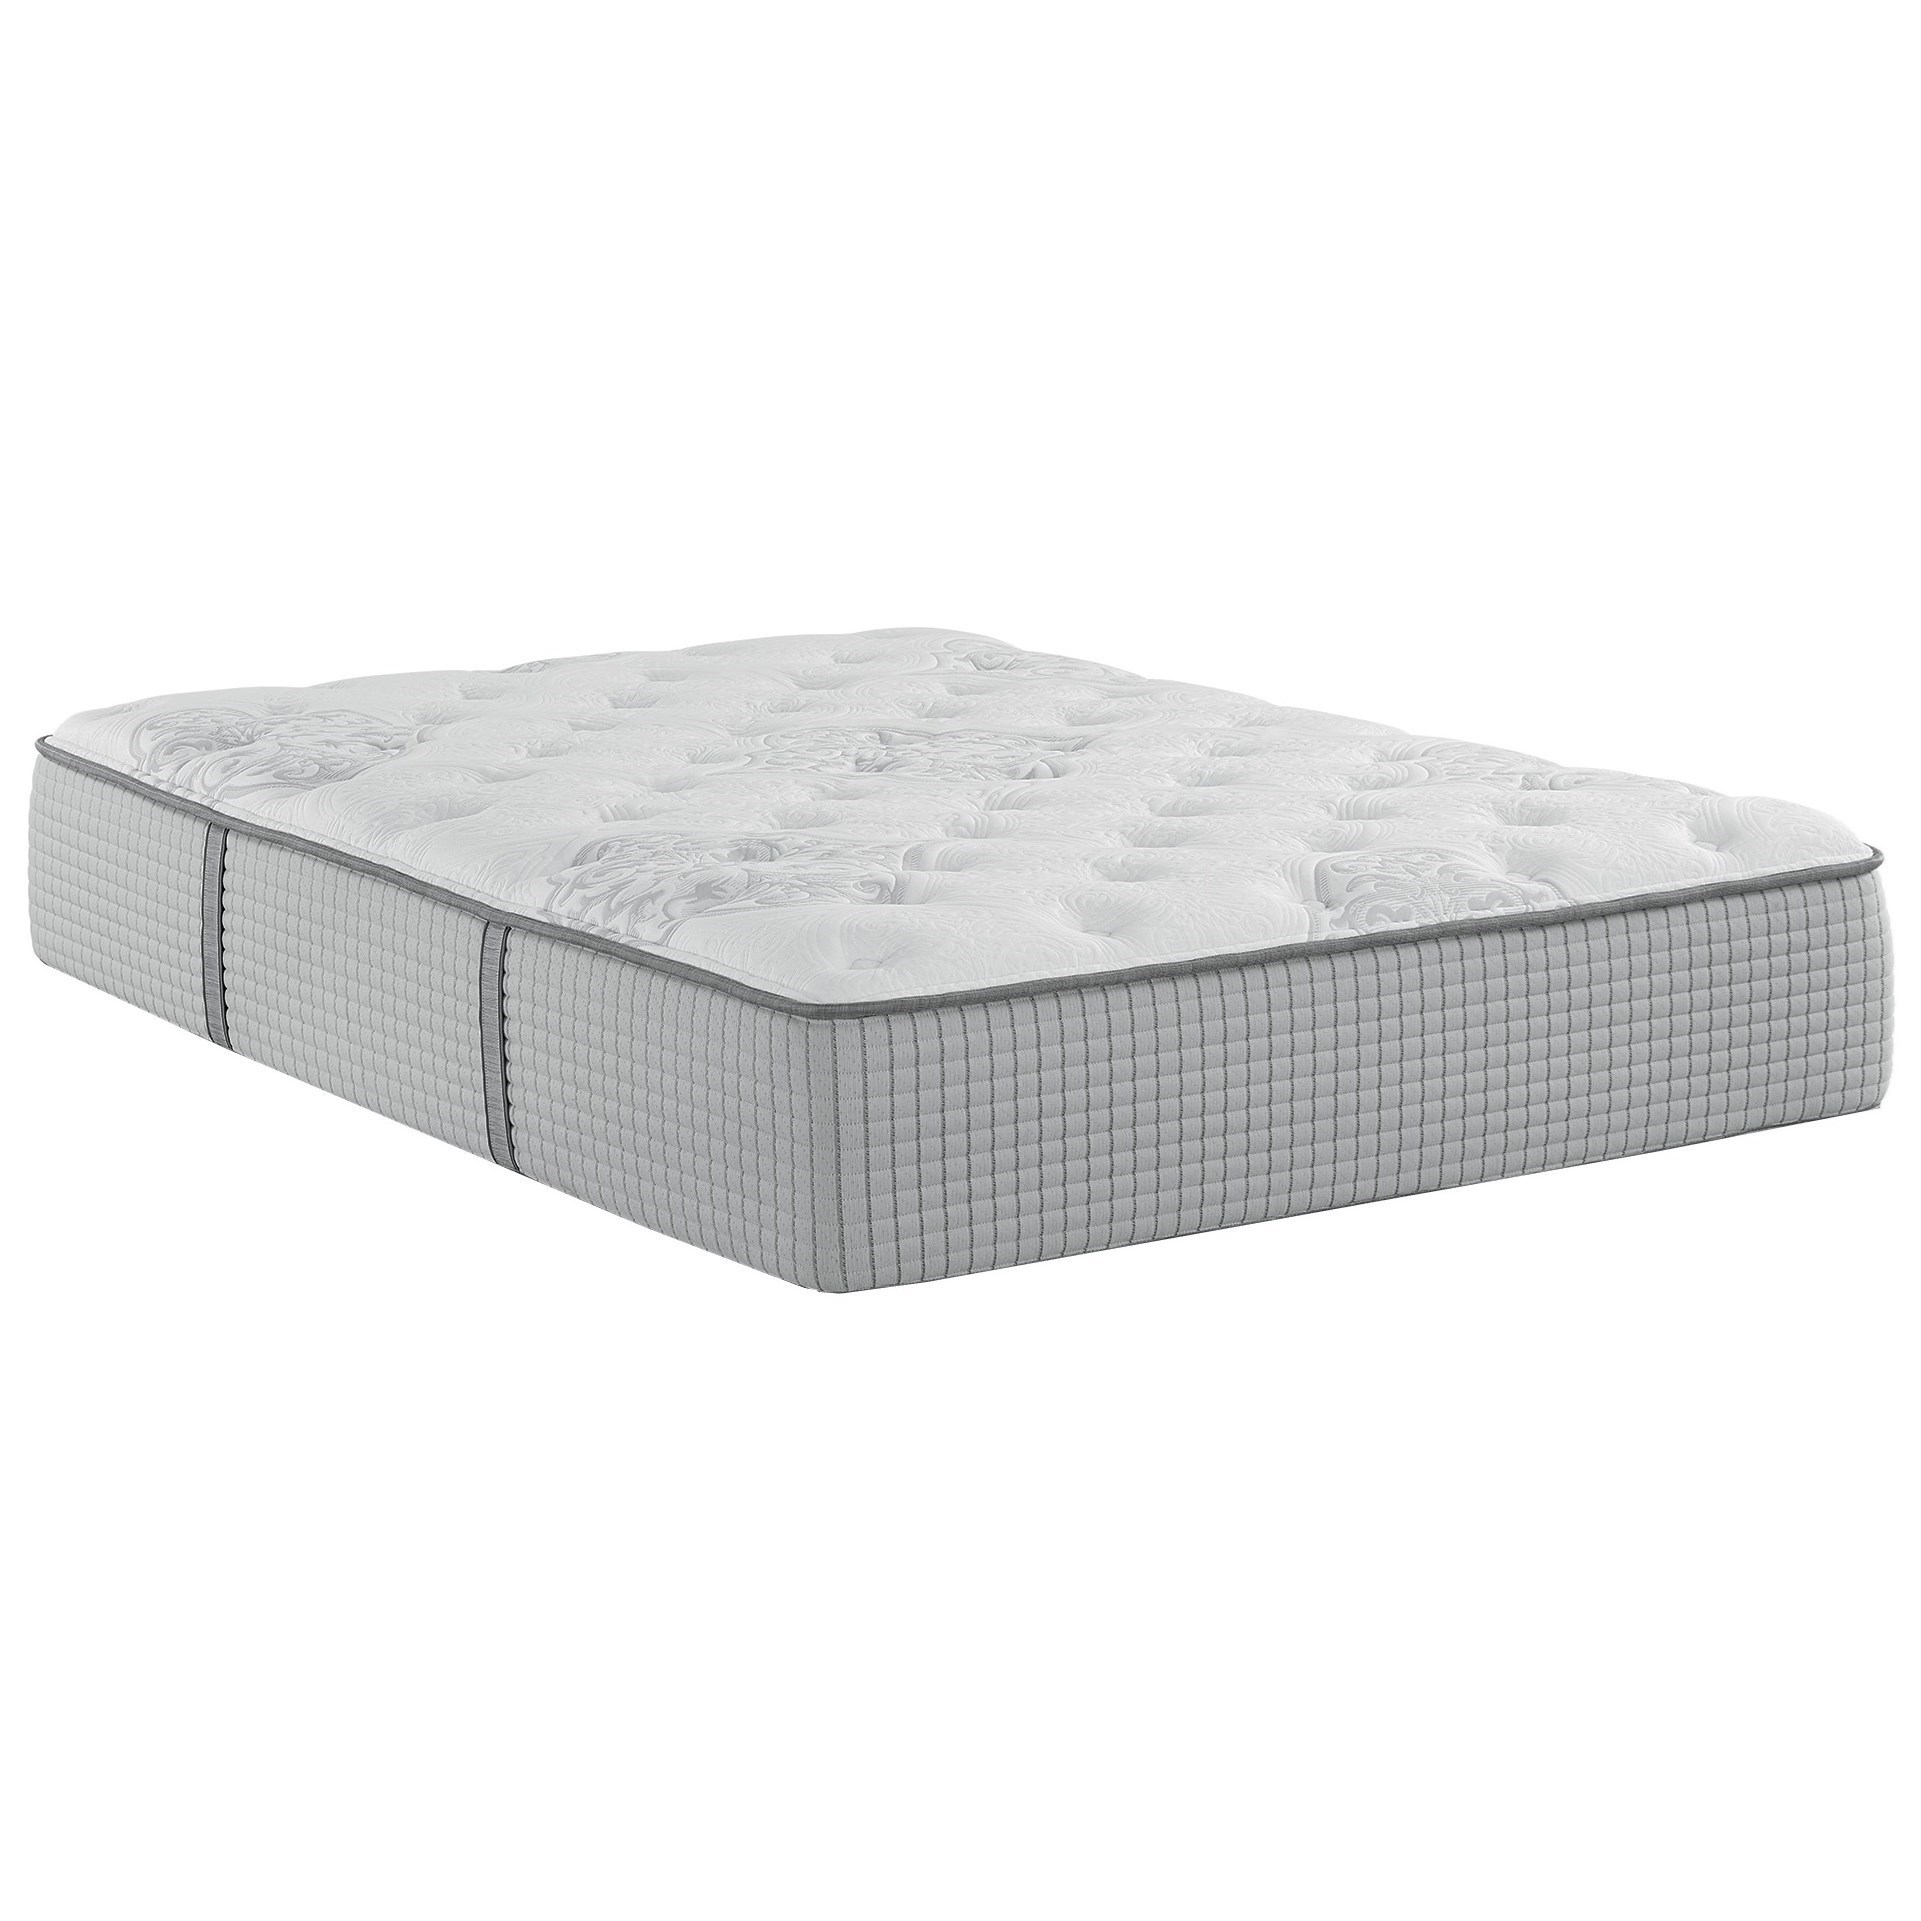 Biltmore Hybrid Motif King Plush Hybrid Mattress by Restonic at Rotmans